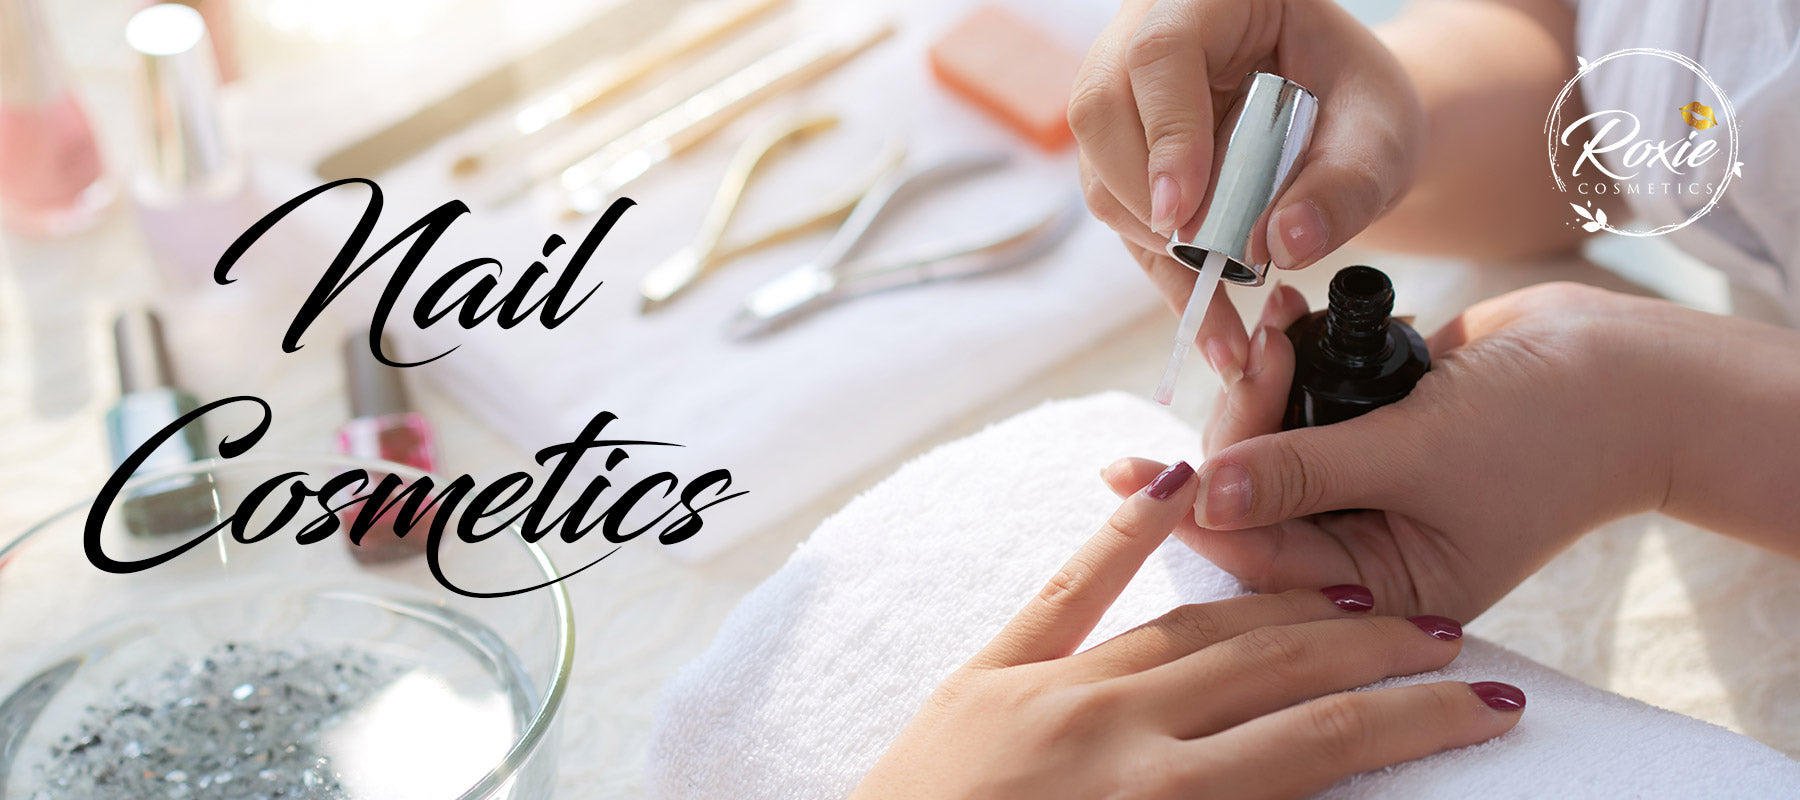 nail care beauty roxie cosmetics